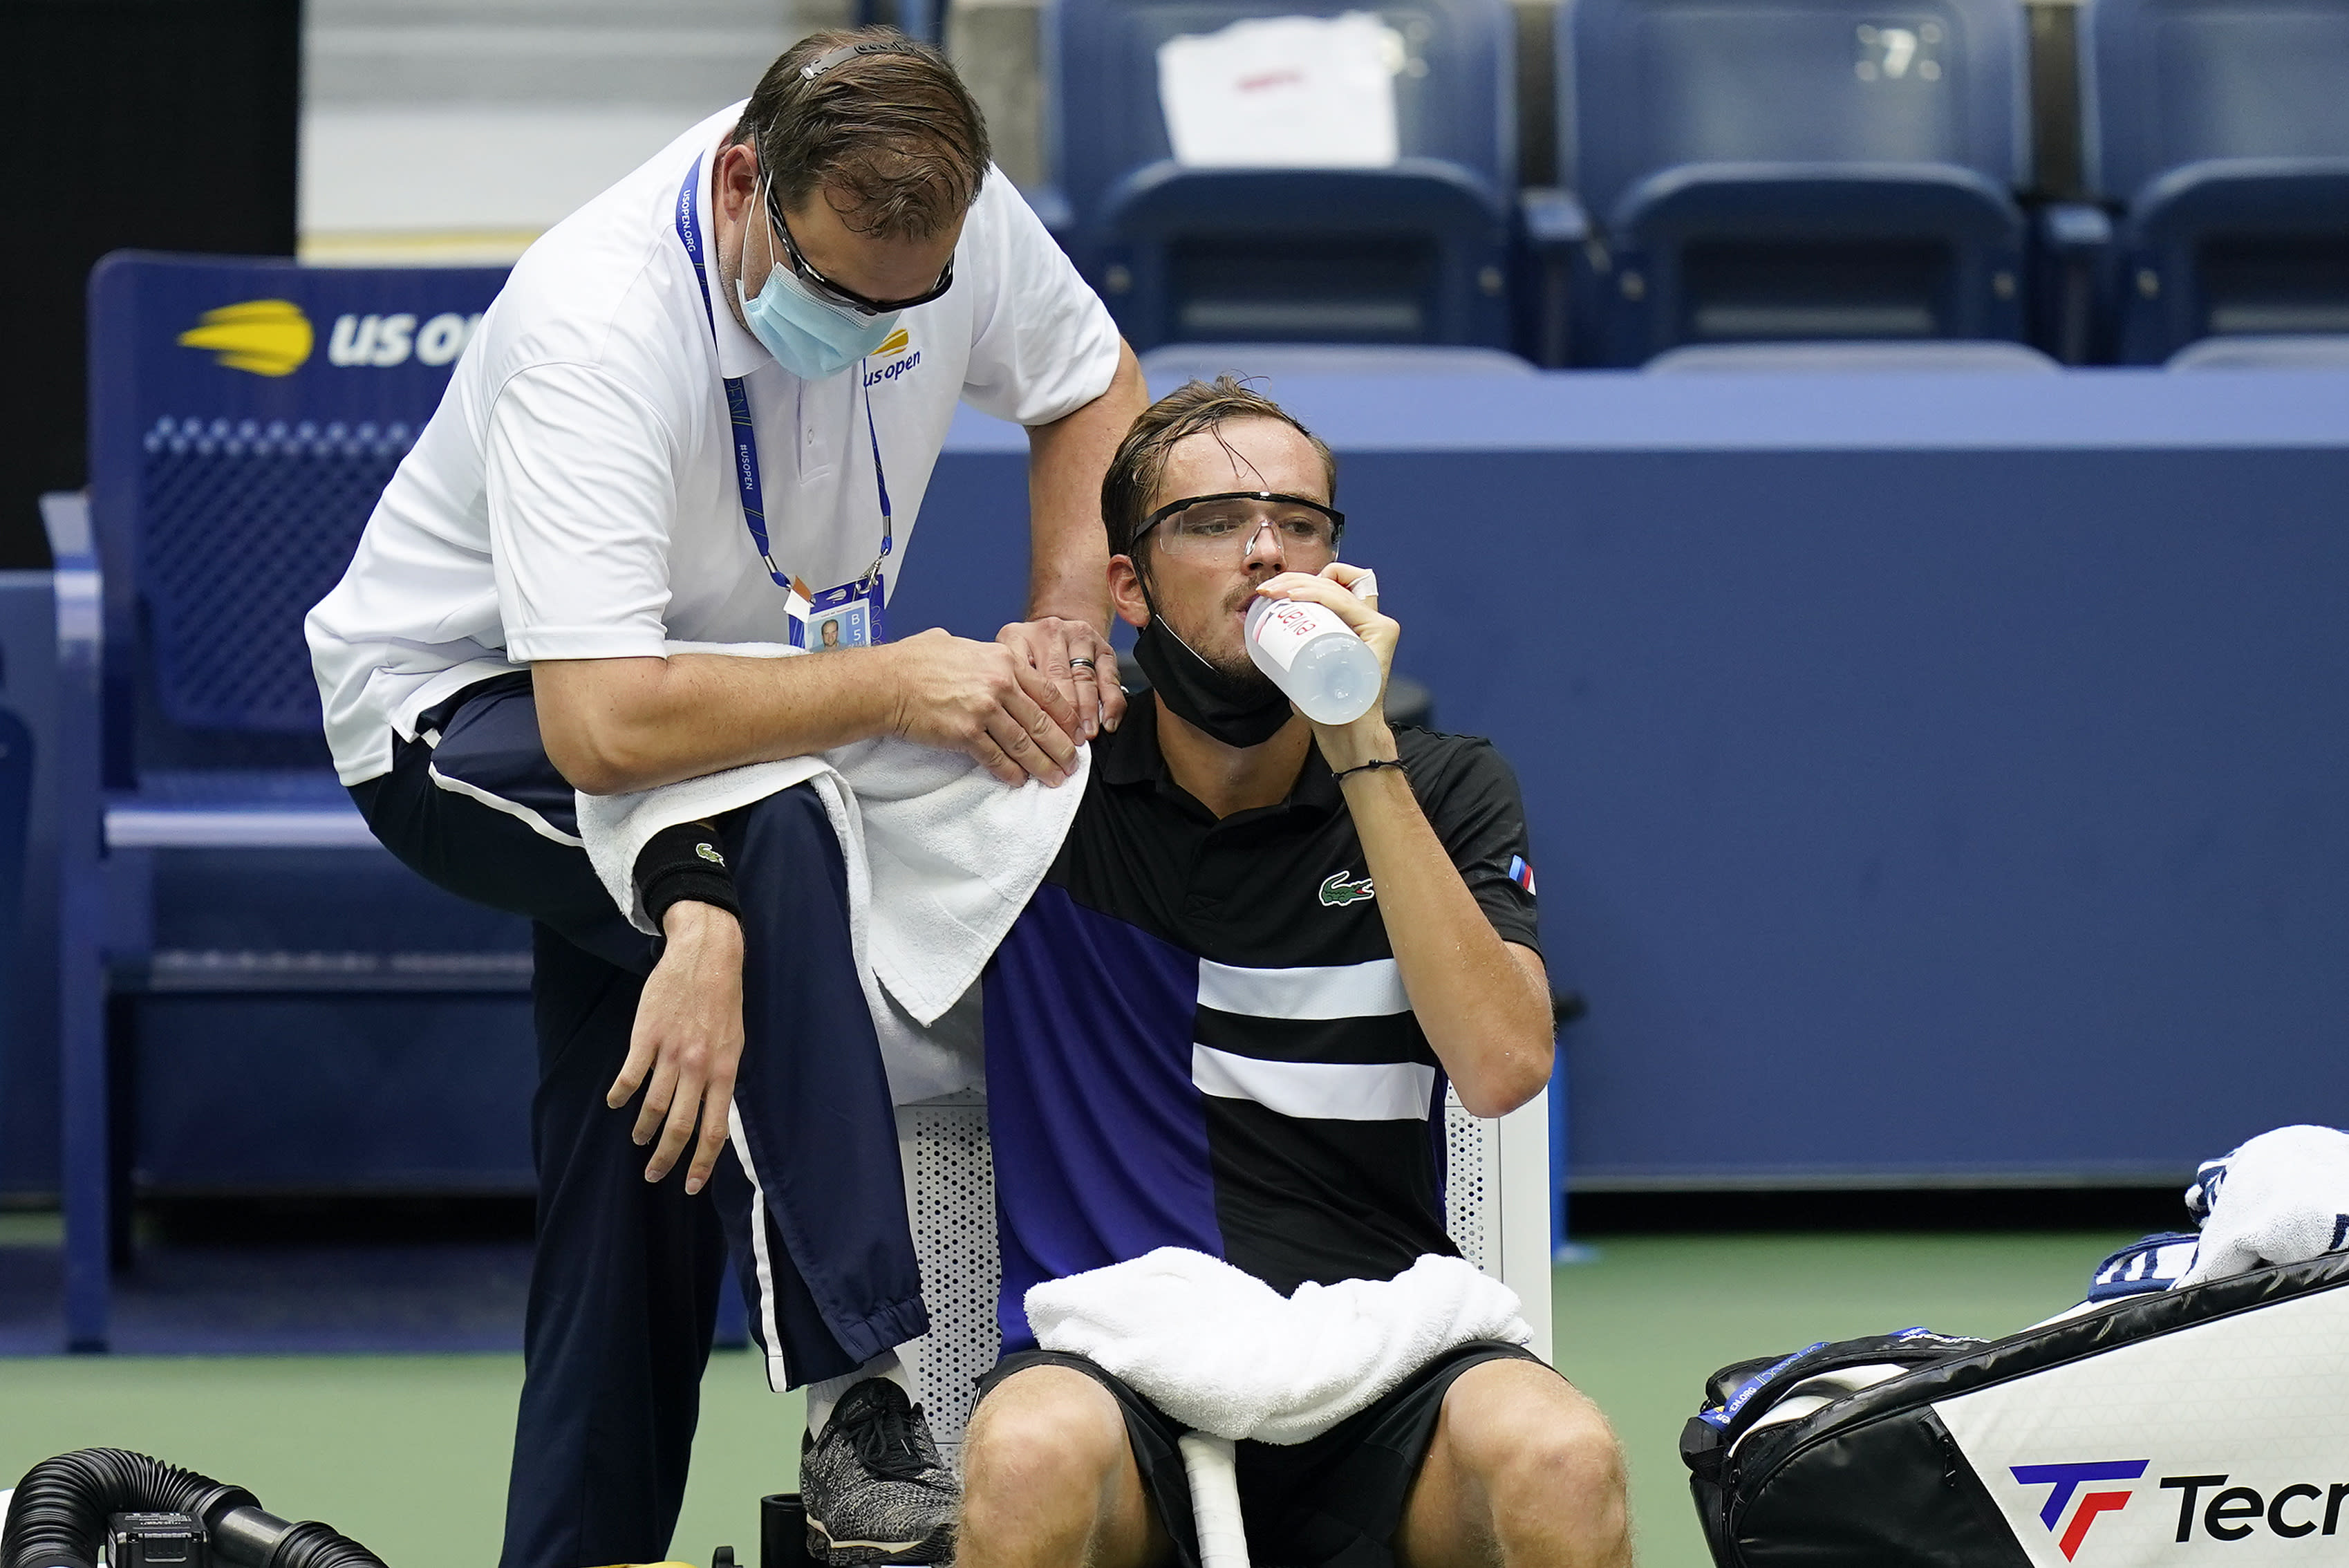 A trainer works on the shoulder of Daniil Medvedev, of Russia, during the quarterfinals of the US Open tennis championships against Andrey Rublev, of Russia, Wednesday, Sept. 9, 2020, in New York. (AP Photo/Seth Wenig)